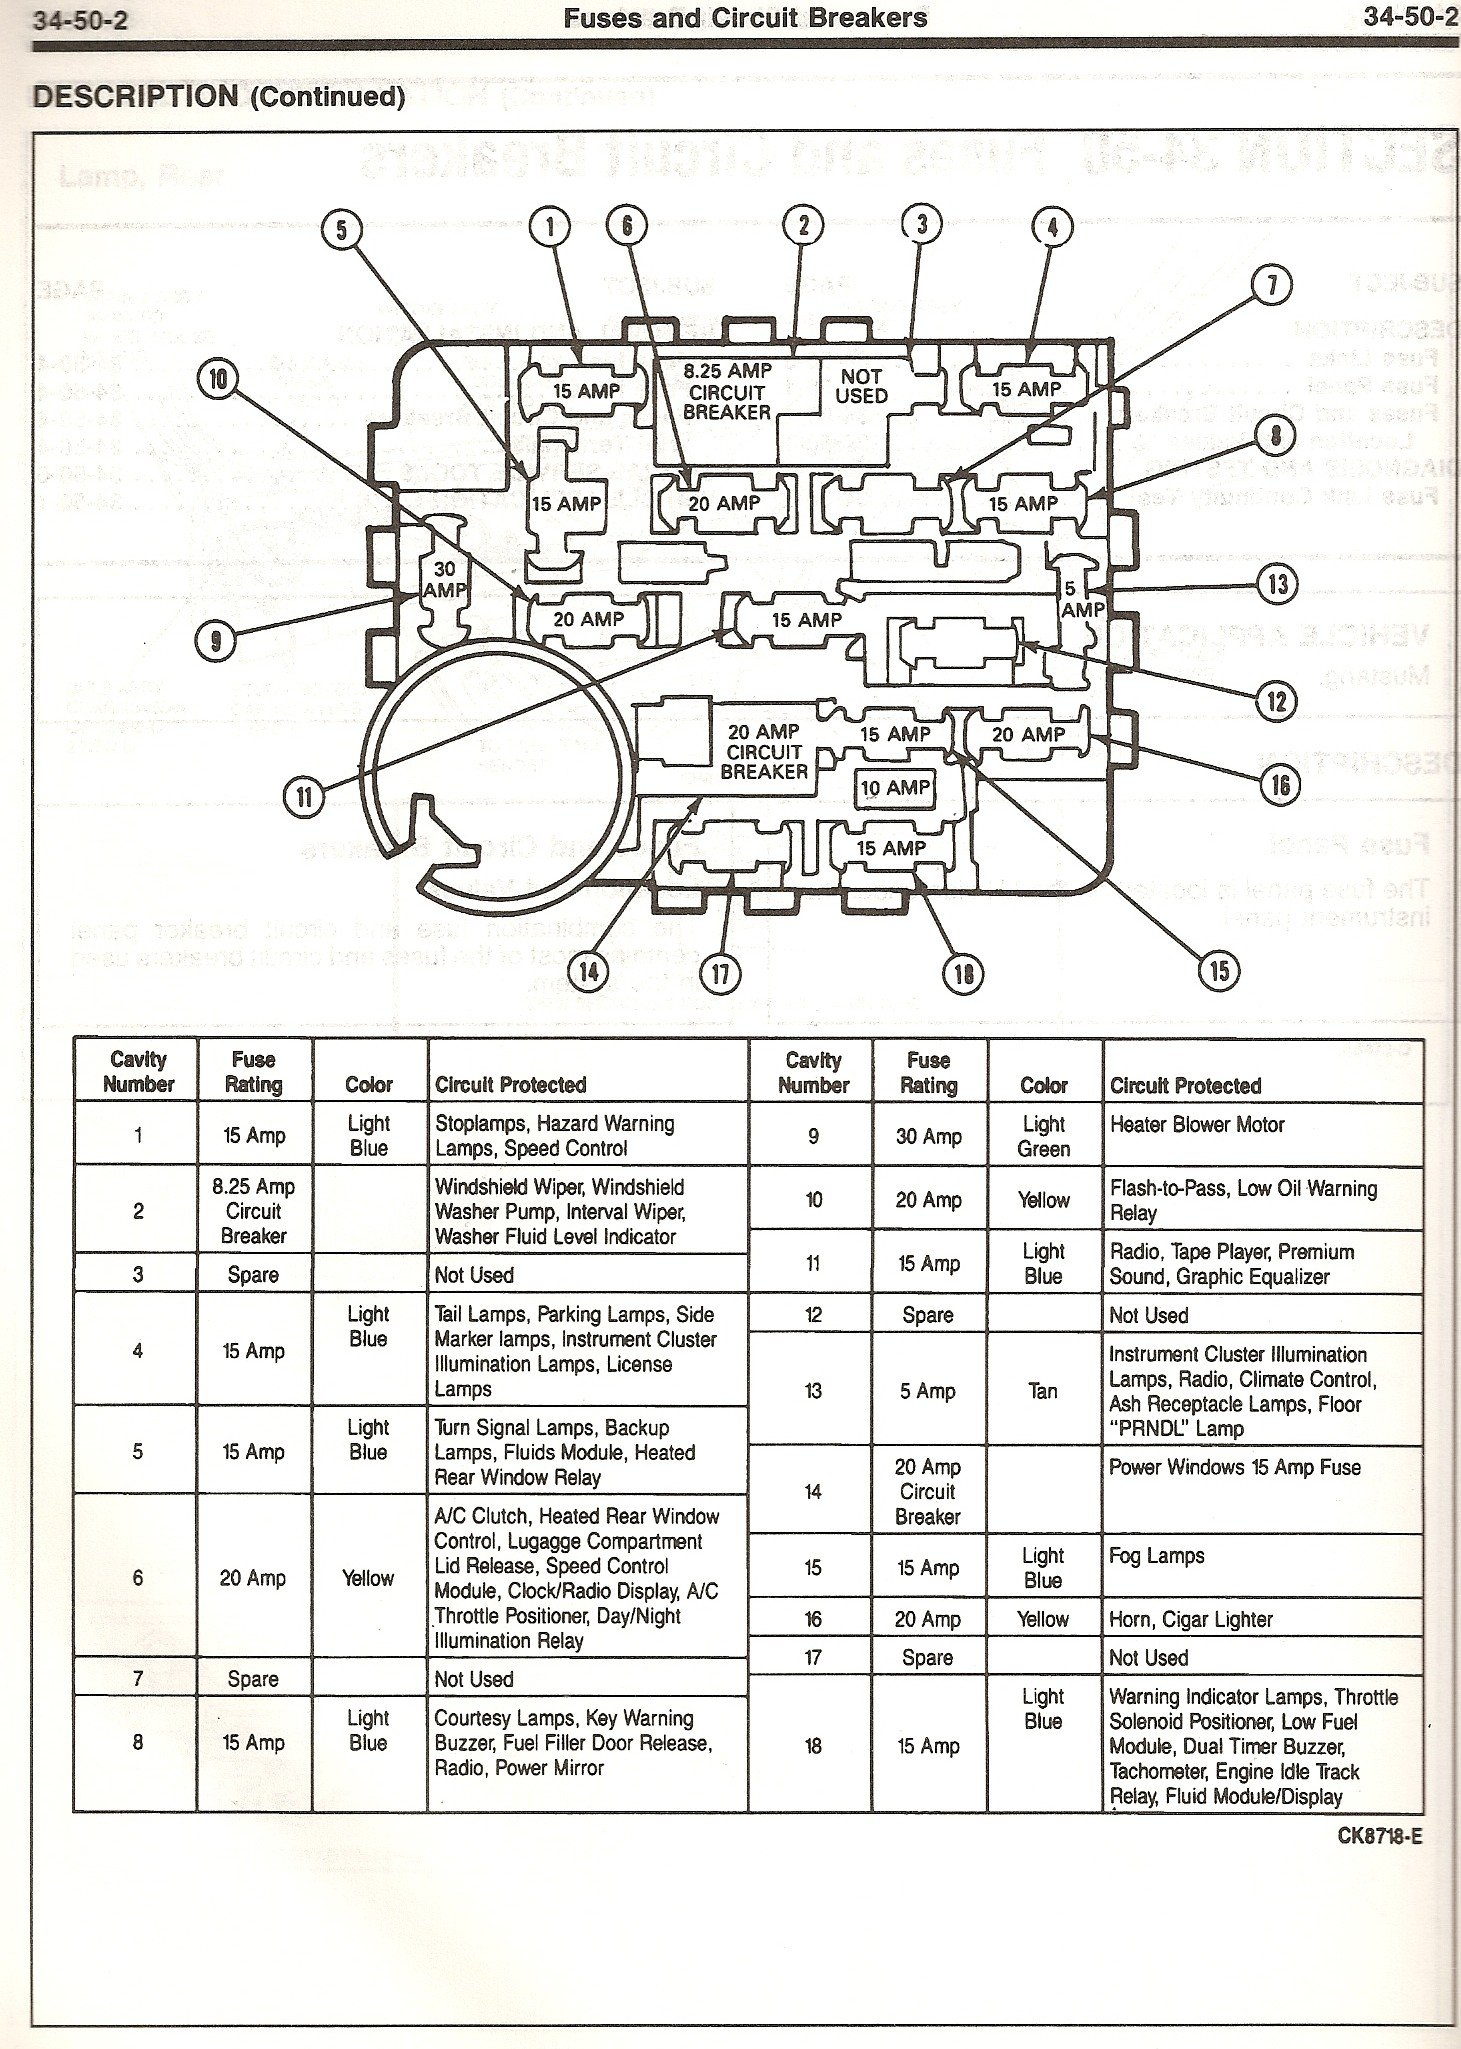 is a fuse box diagram for a 1990 ford mustang click for larger vie